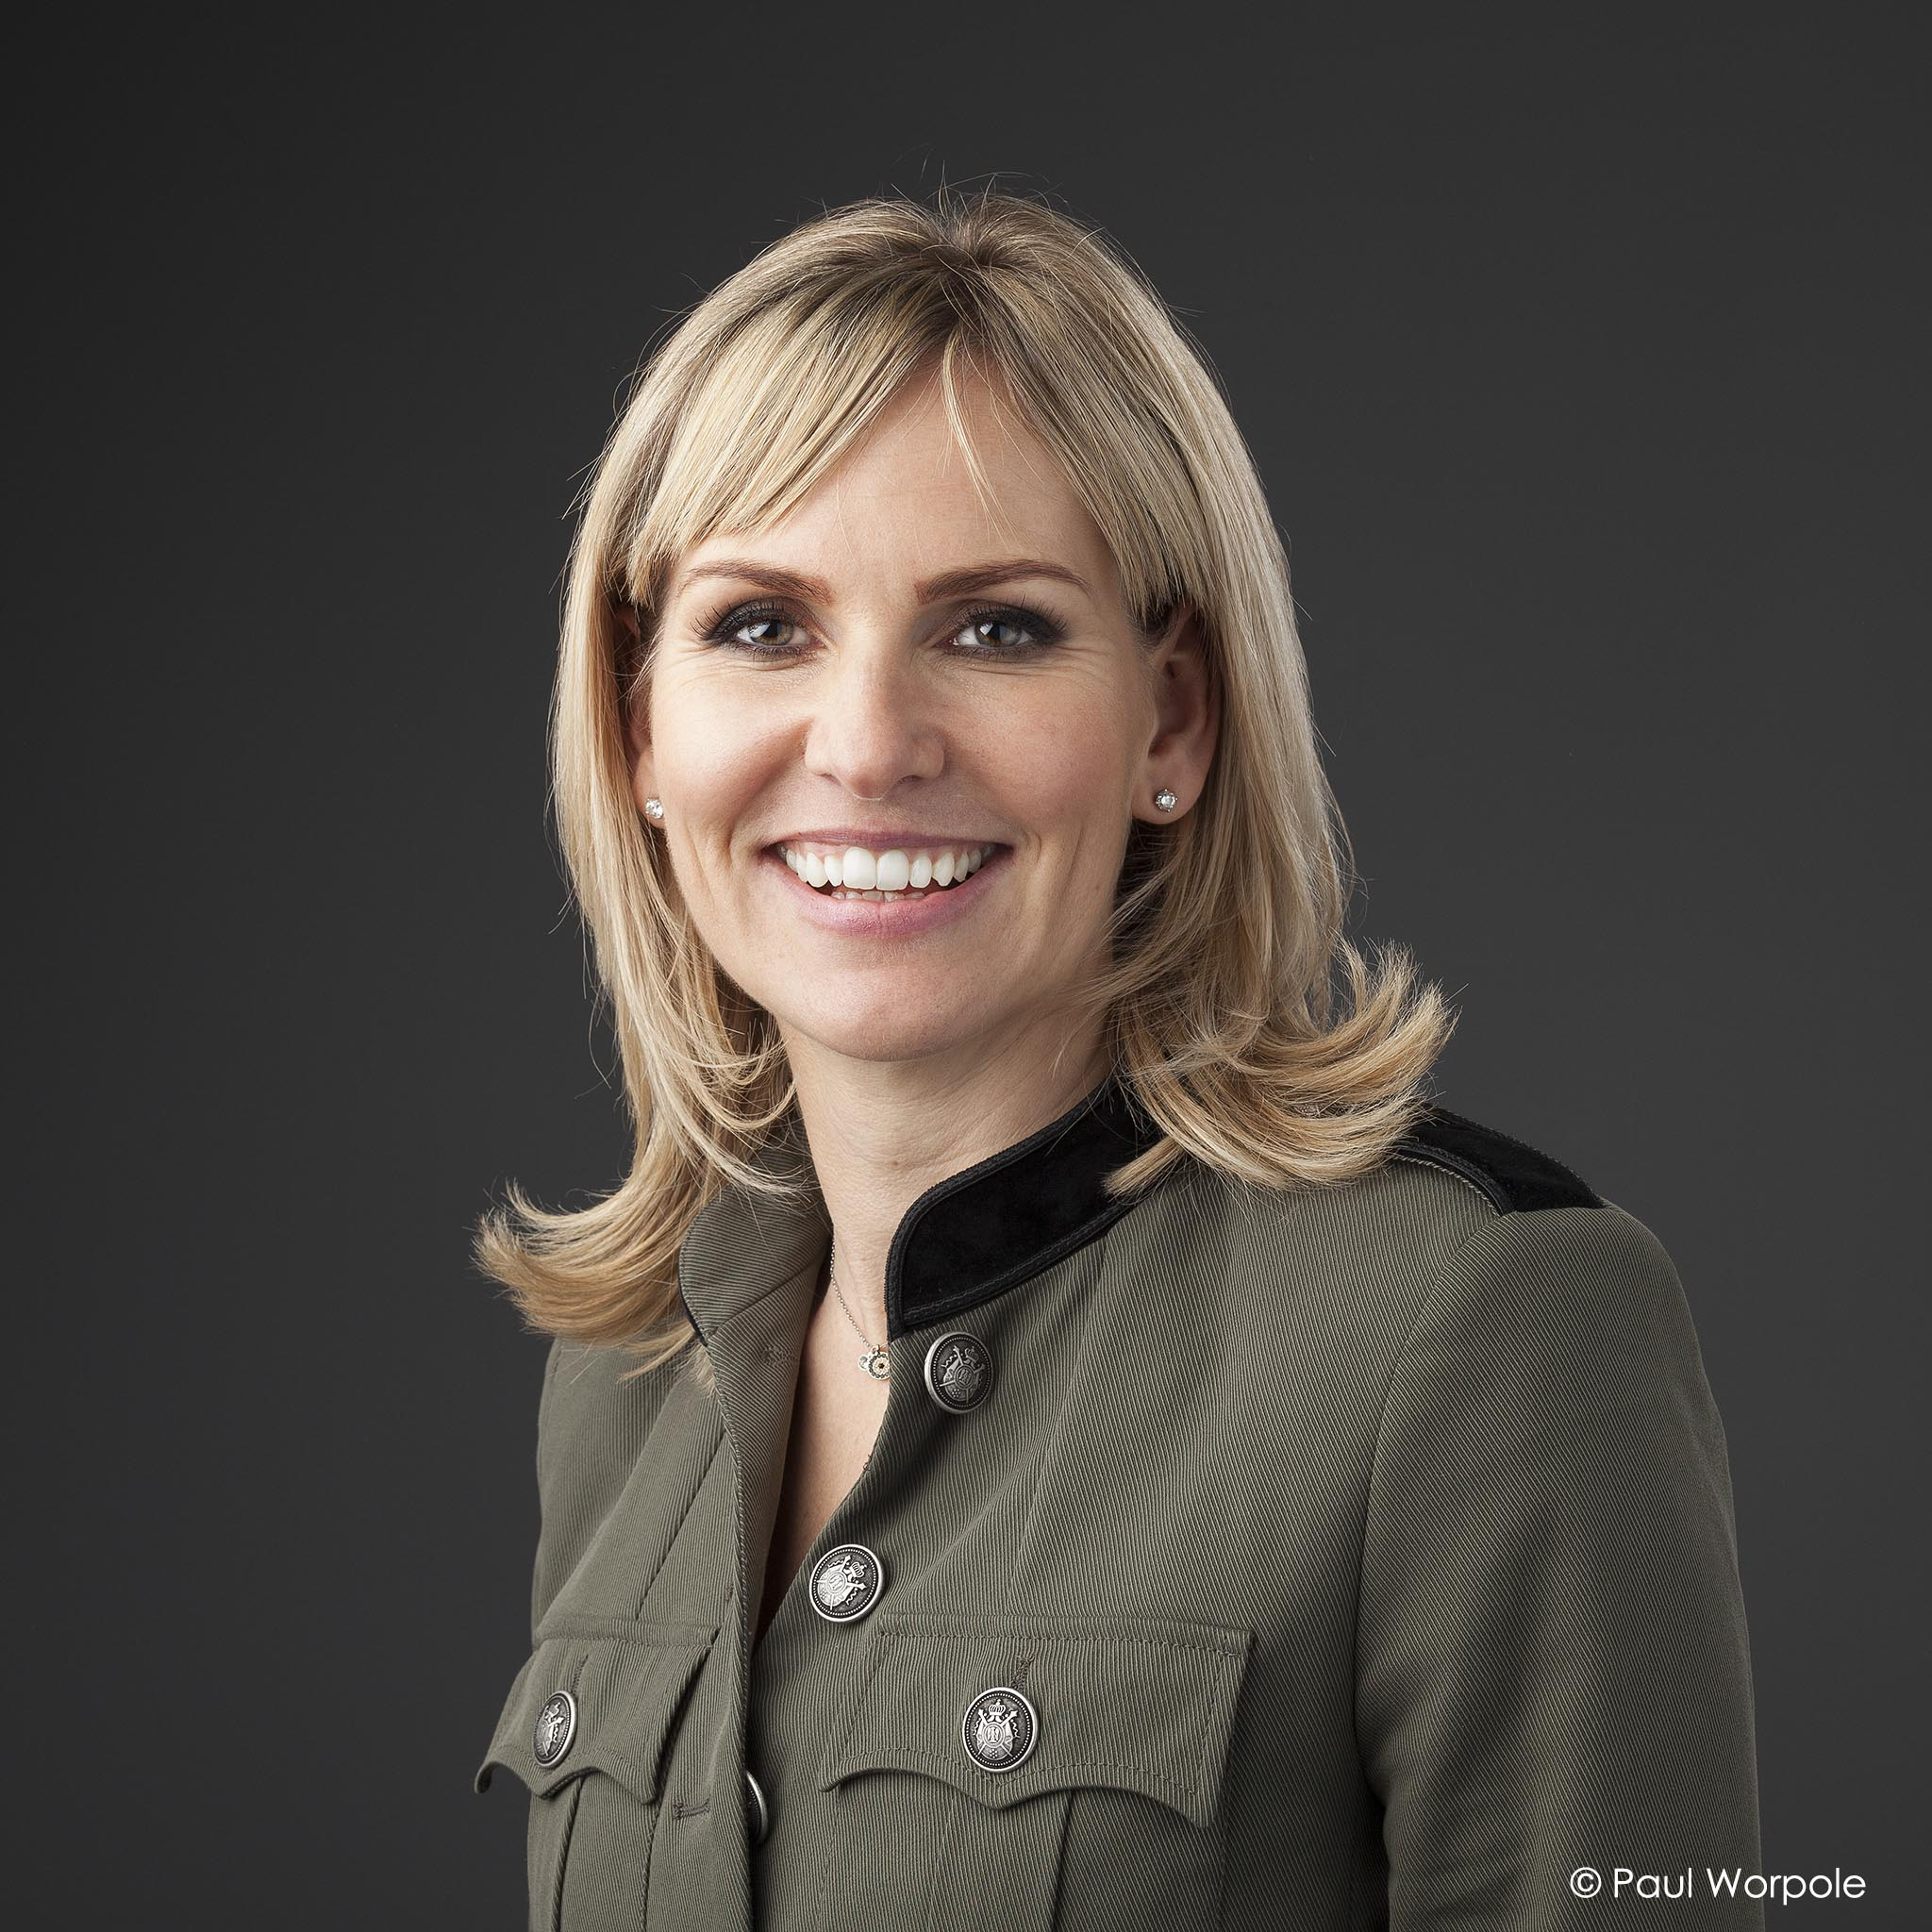 Portrait Photography of woman in grey military style jacket Paul Worpole Photography